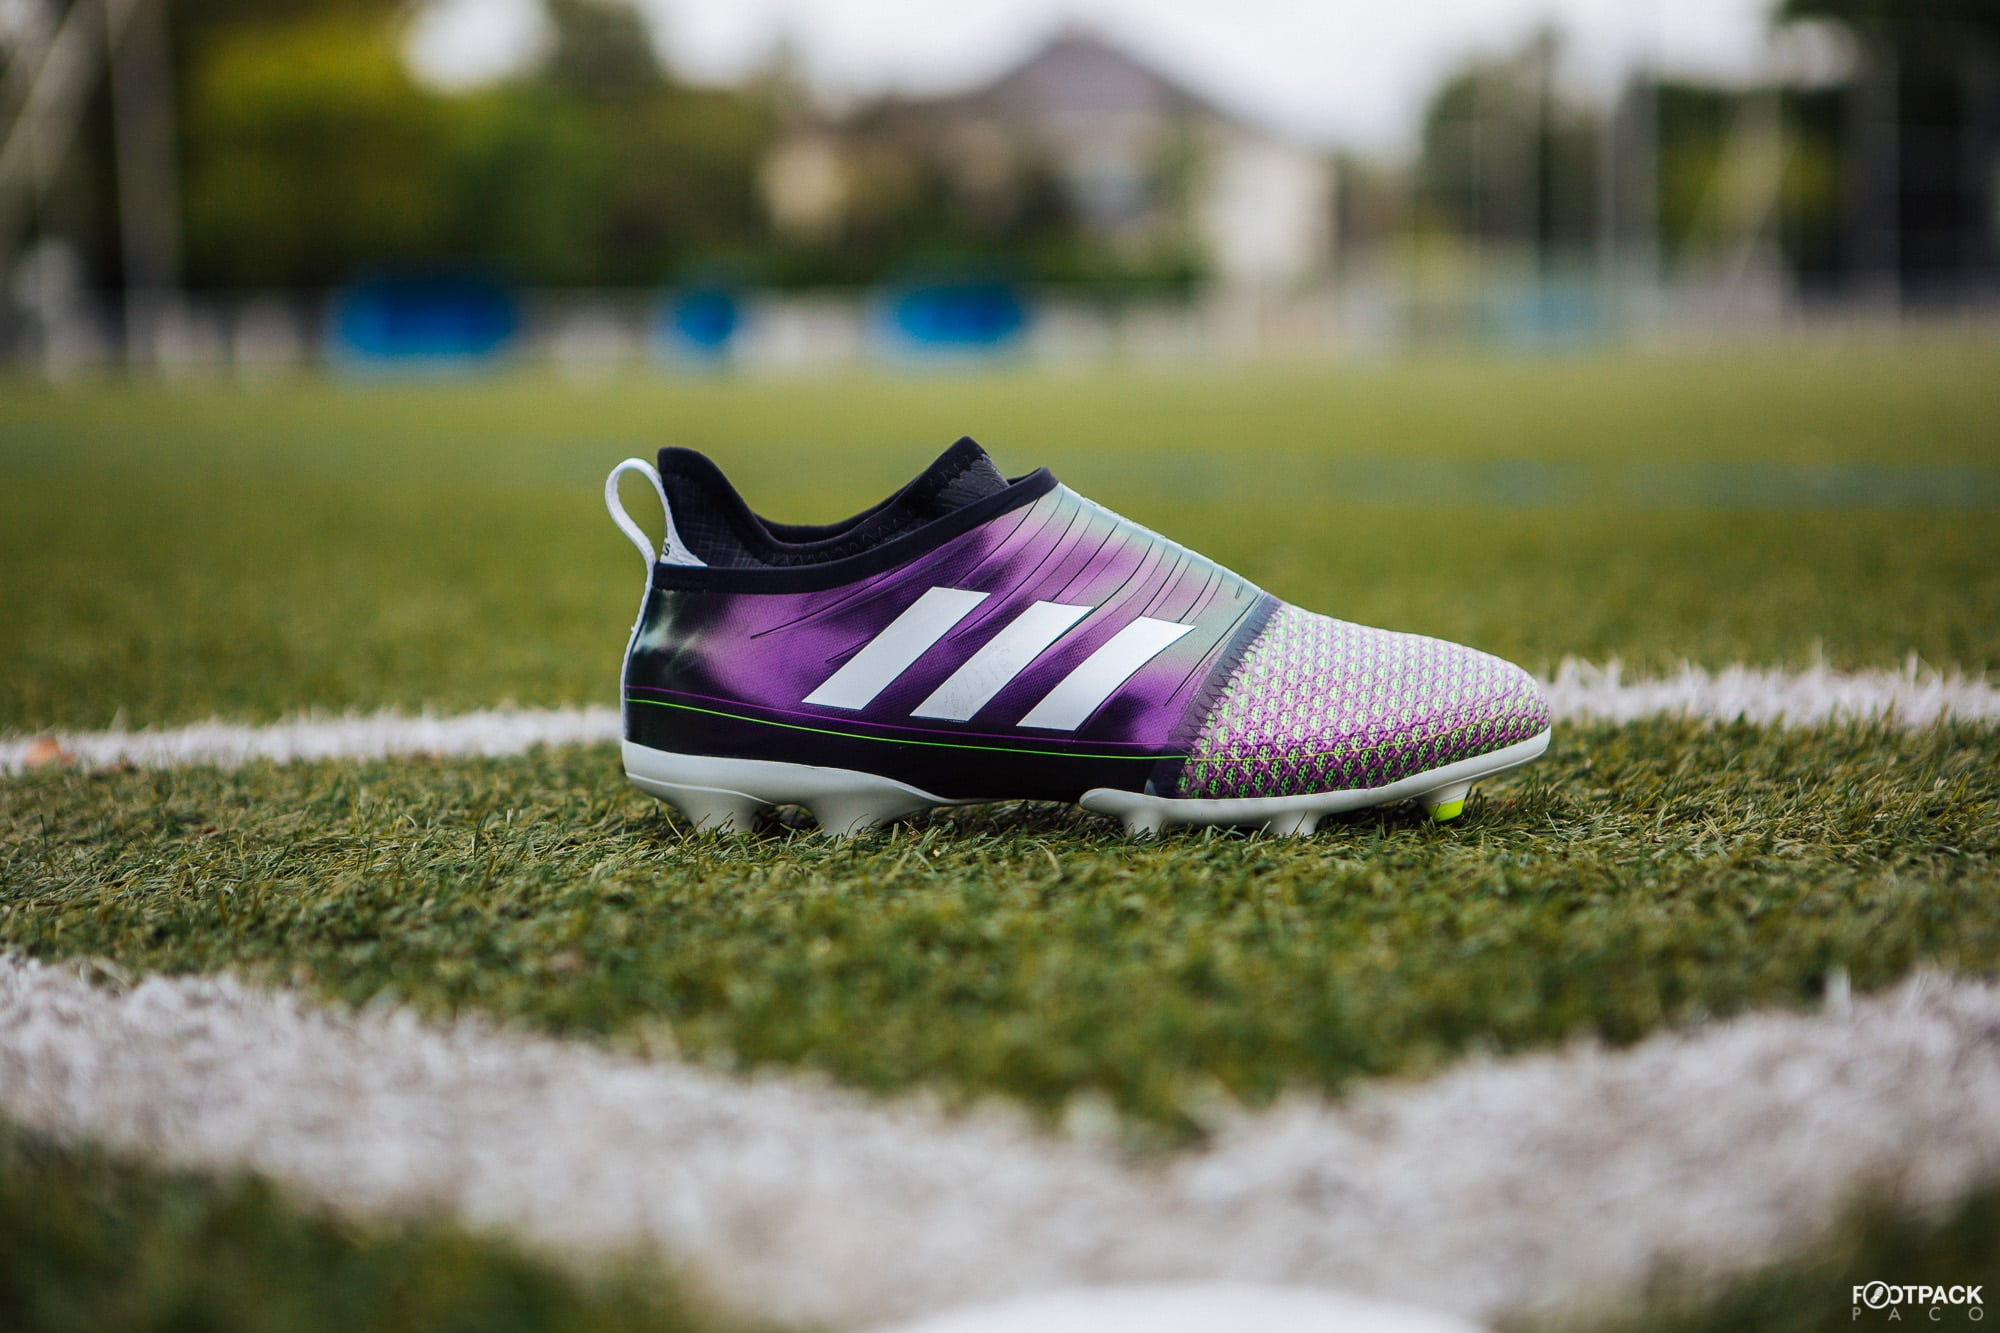 Chaussures-football-adidas-glitch-f50-mai-2018-2